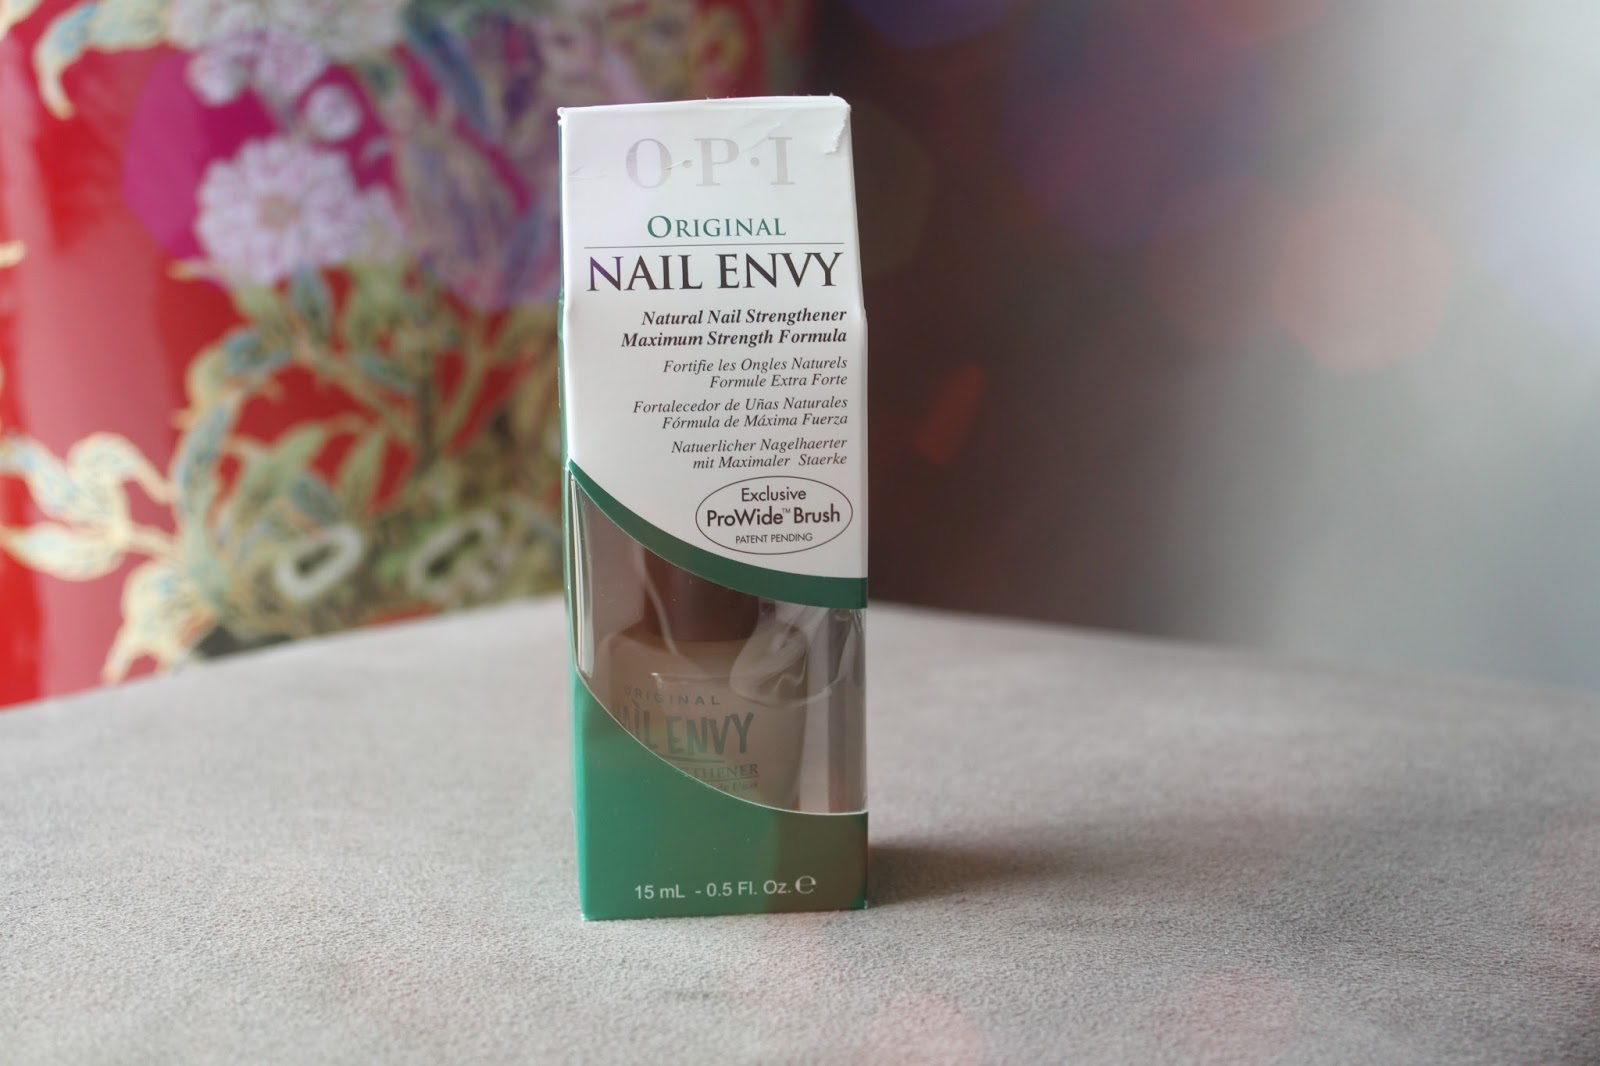 Australian Beauty Review: Review of the OPI Original Nail Envy